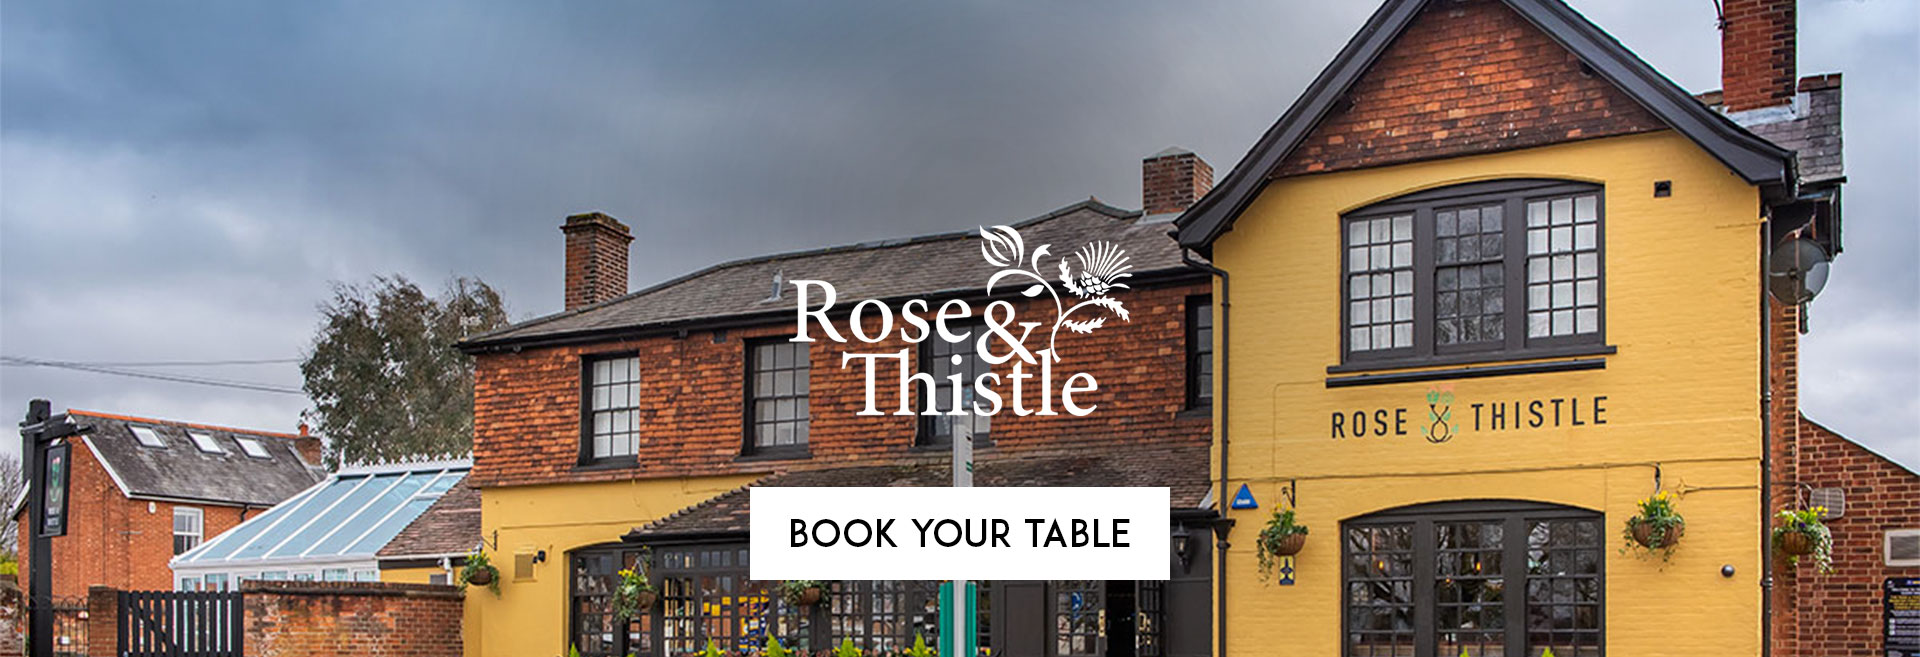 Book Your Table at The Rose and Thistle